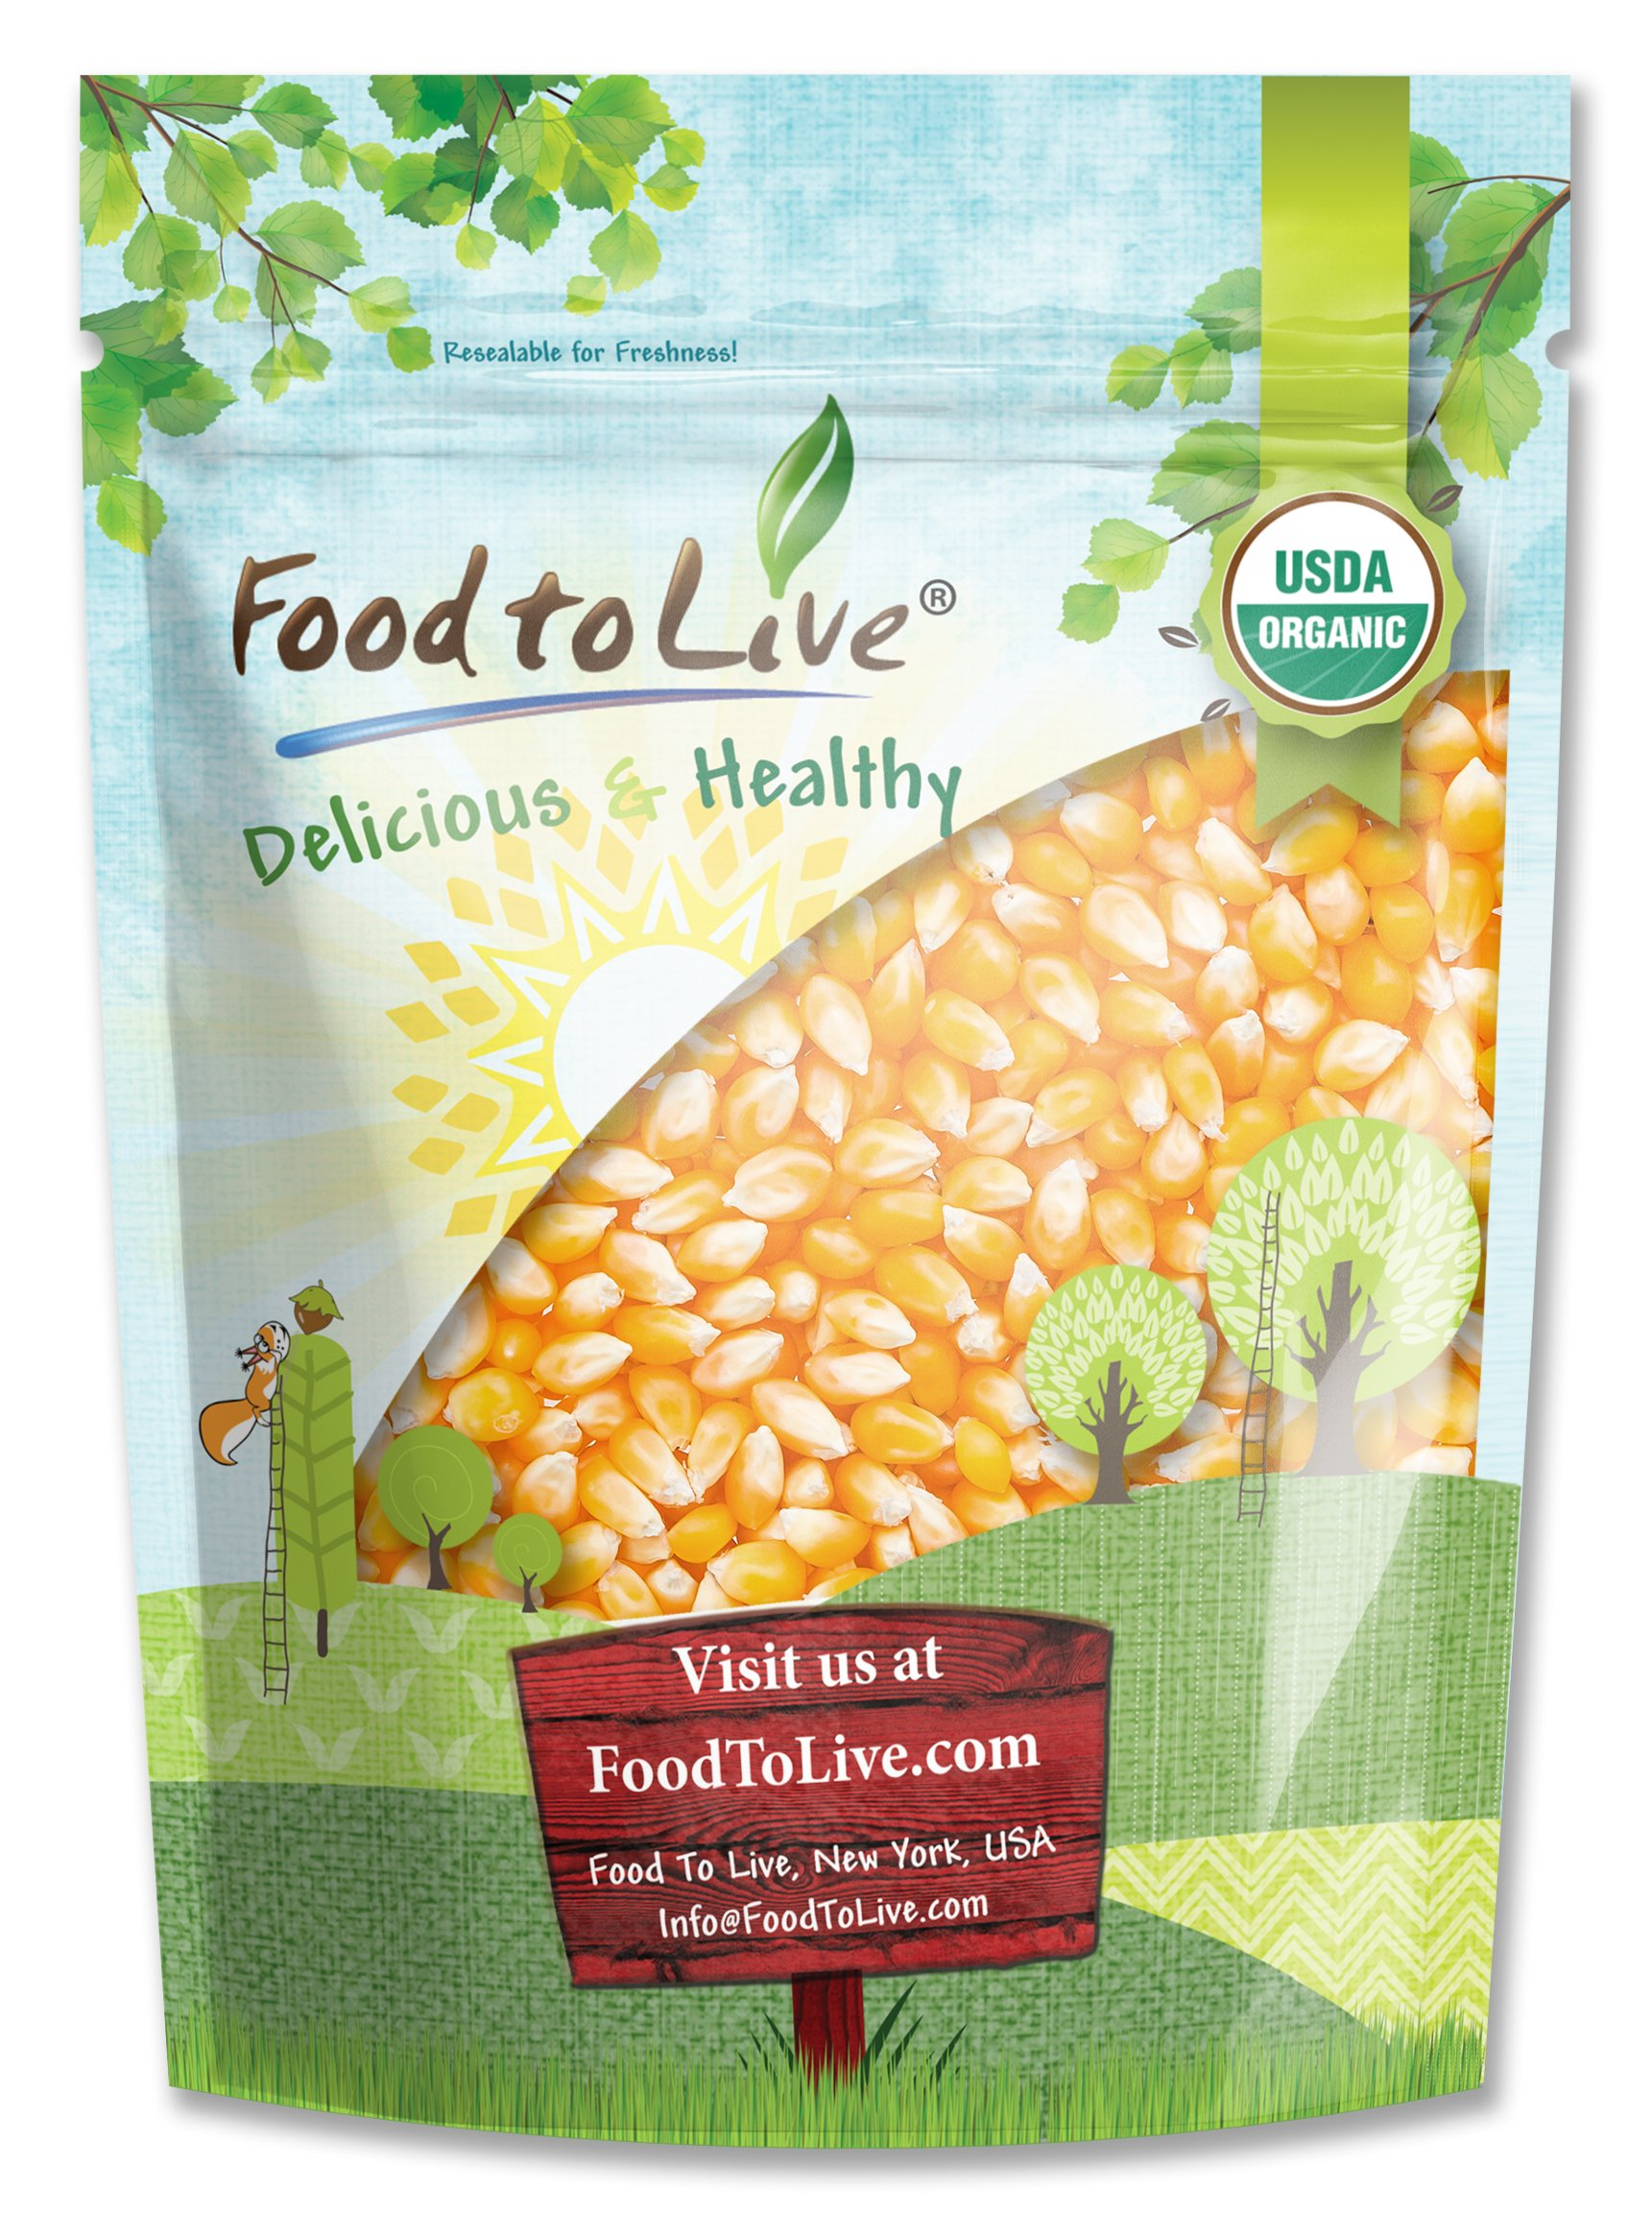 Organic Super Sweet Corn, 3 Pounds - Freeze-Dried Kernels, Non-GMO, Kosher, Raw, Healthy Snack, Bulk, Grown in the USA by Food to Live